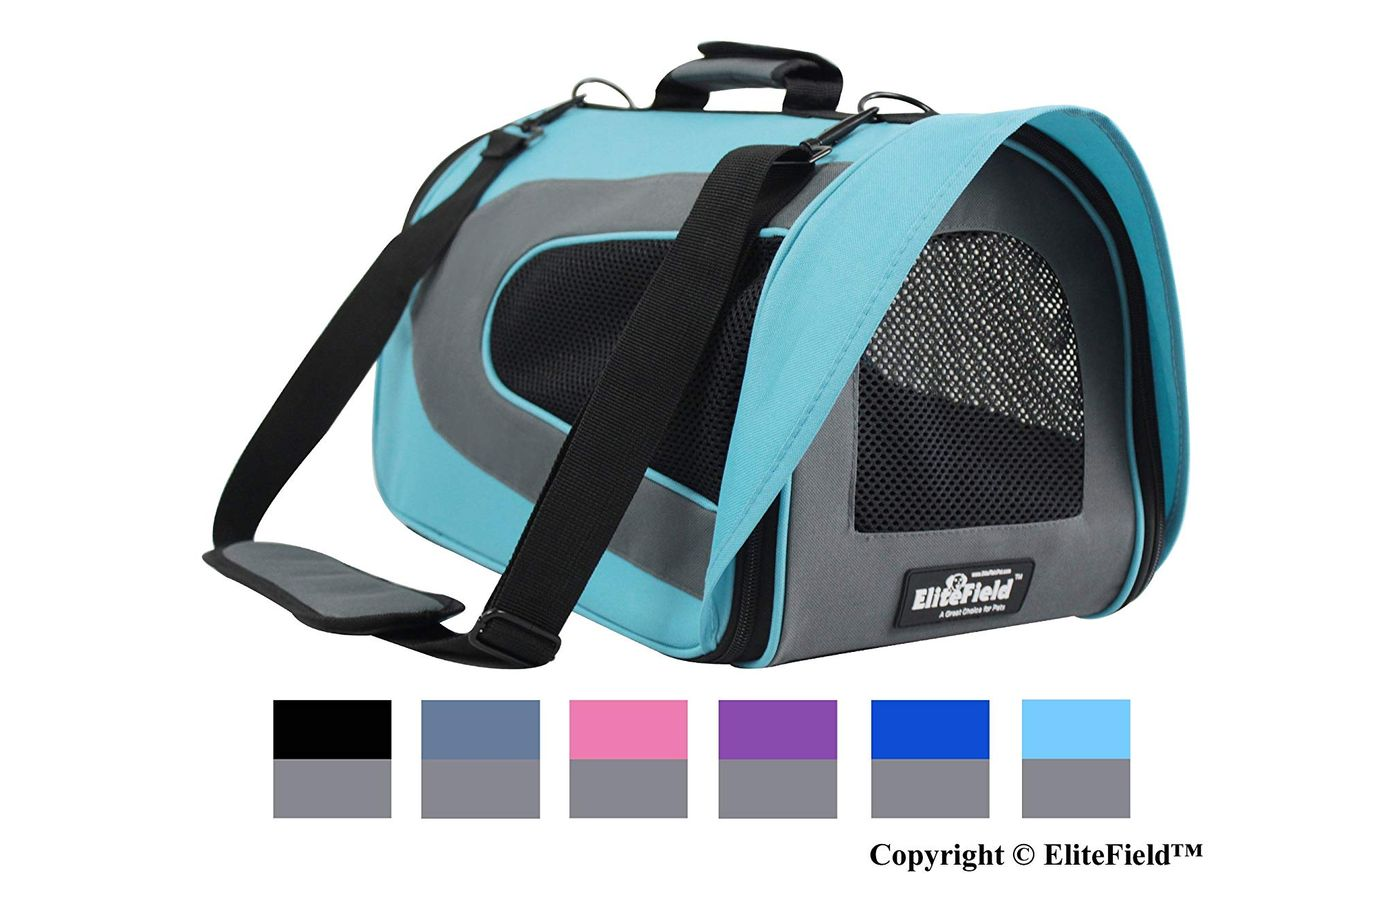 EliteField Deluxe Soft Cat Carrier